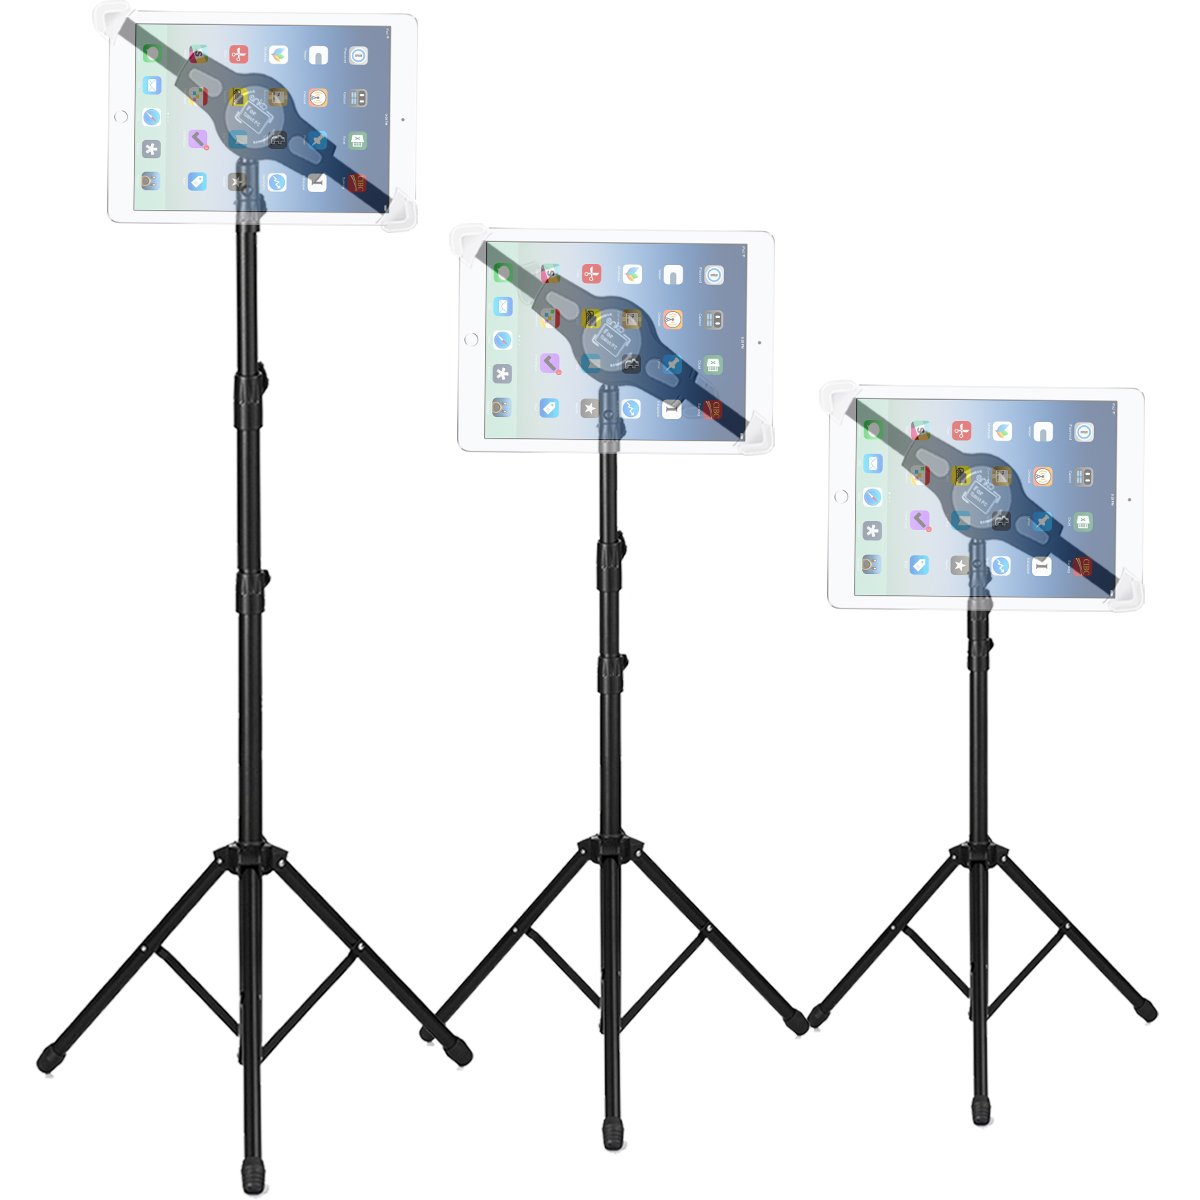 Foldable Floor Tablet Tripod Stand Mount, ANKO iPad and Tablet Floor Height Adjustable 360 Rotating Stand for iPad Mini, iPad Air, iPad 1,2,3,4, Samsung Galaxy and All 7'' to 12'' Tablets(BLACK) by ANKO